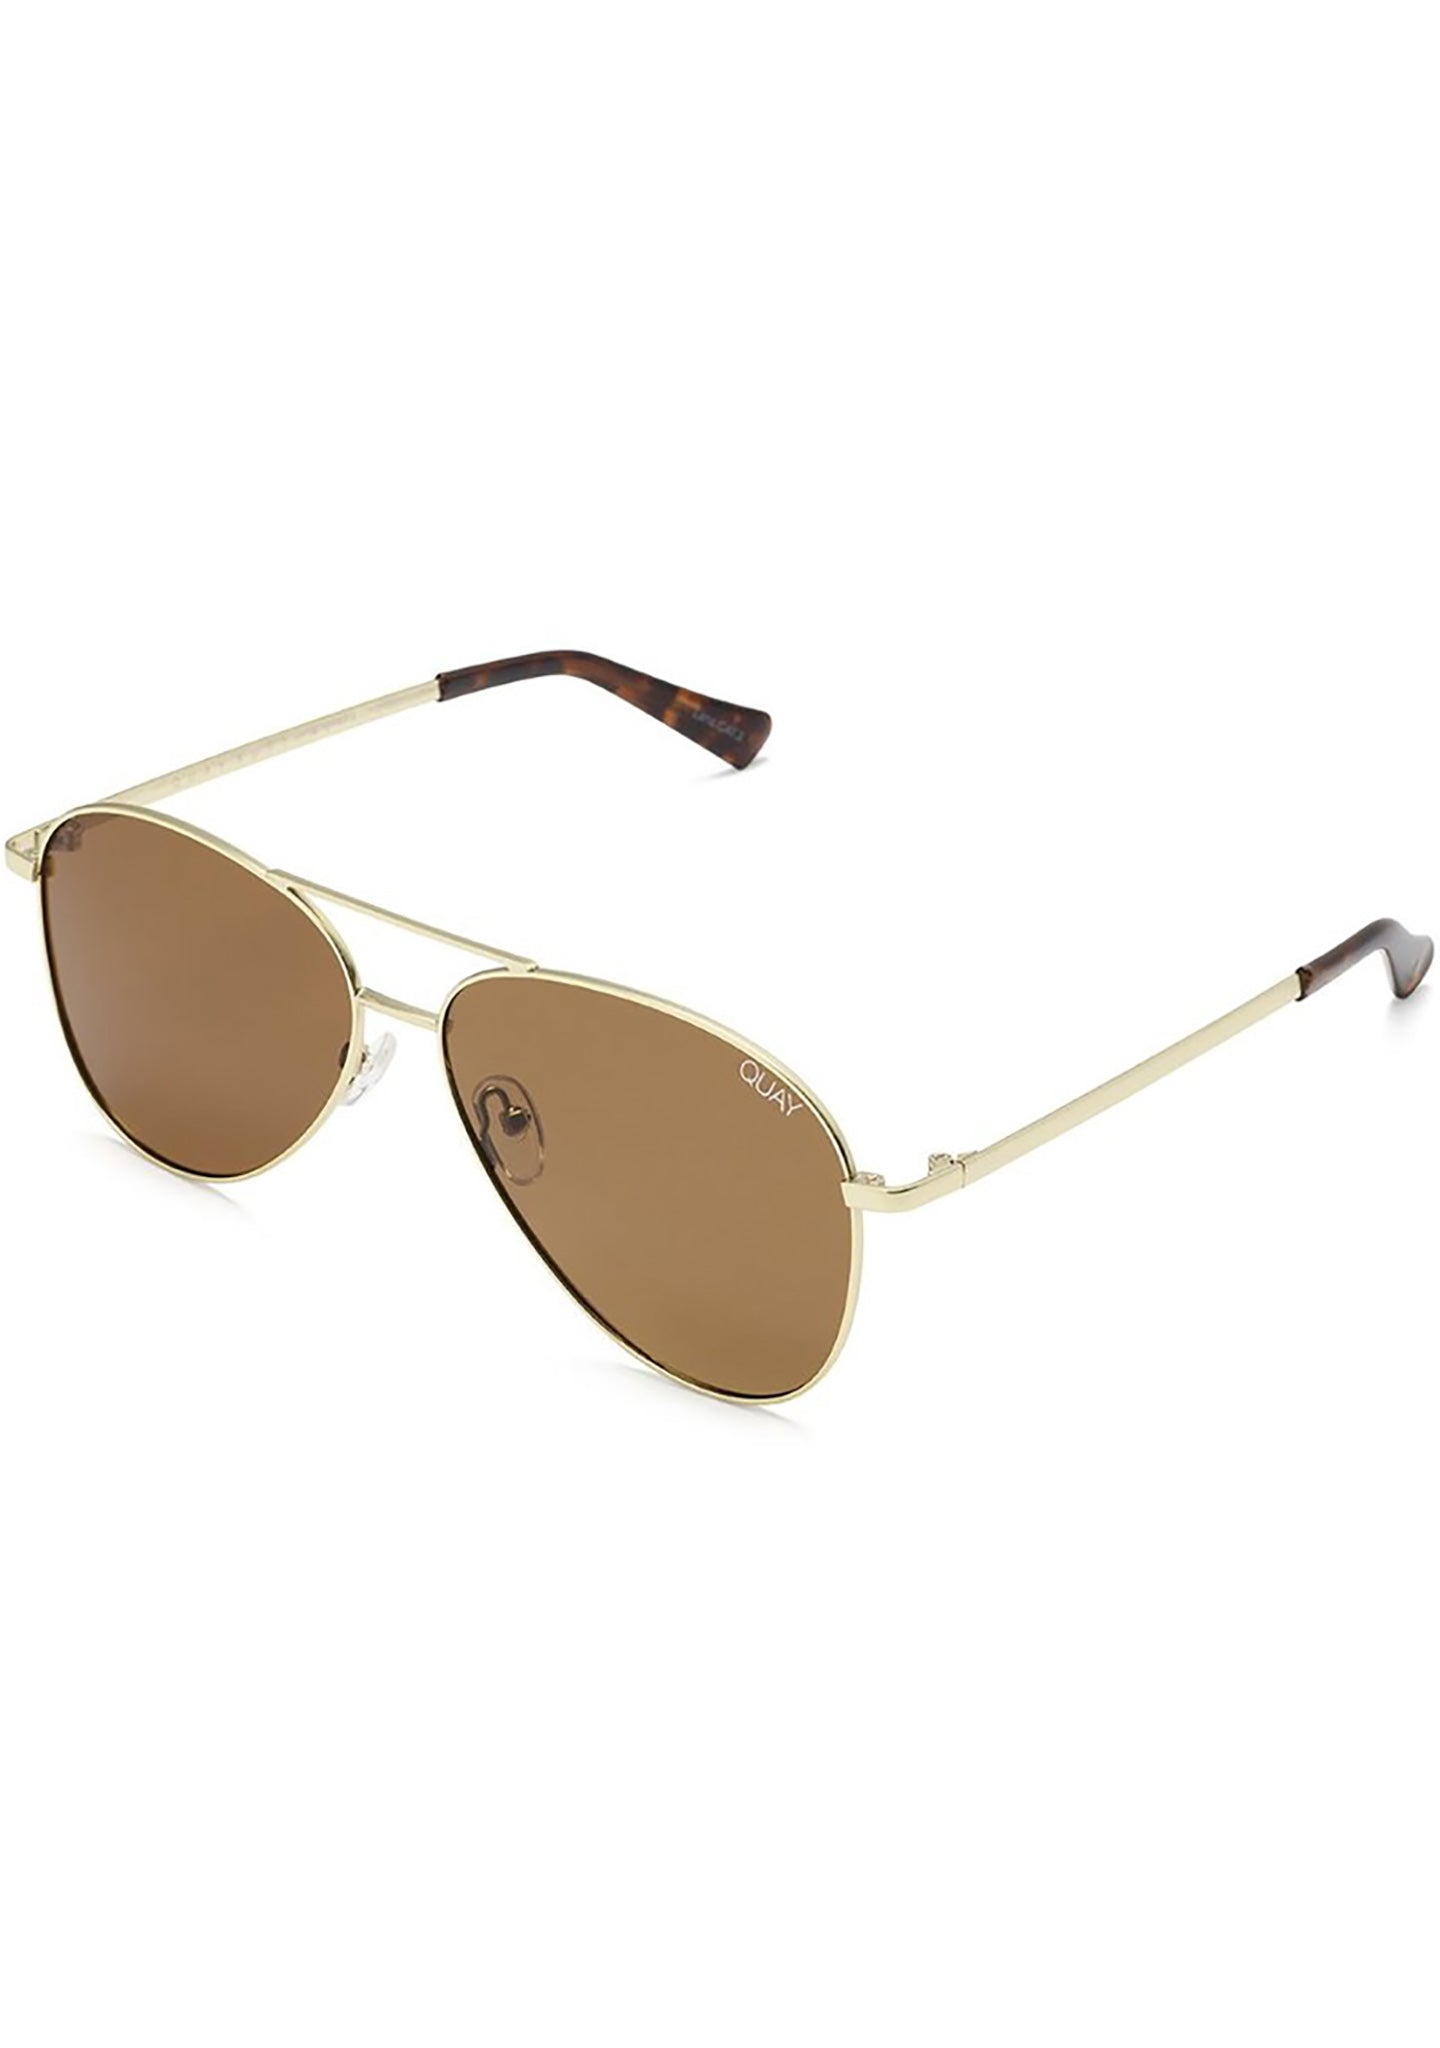 Still Standing Sunglasses in Gold/Brown